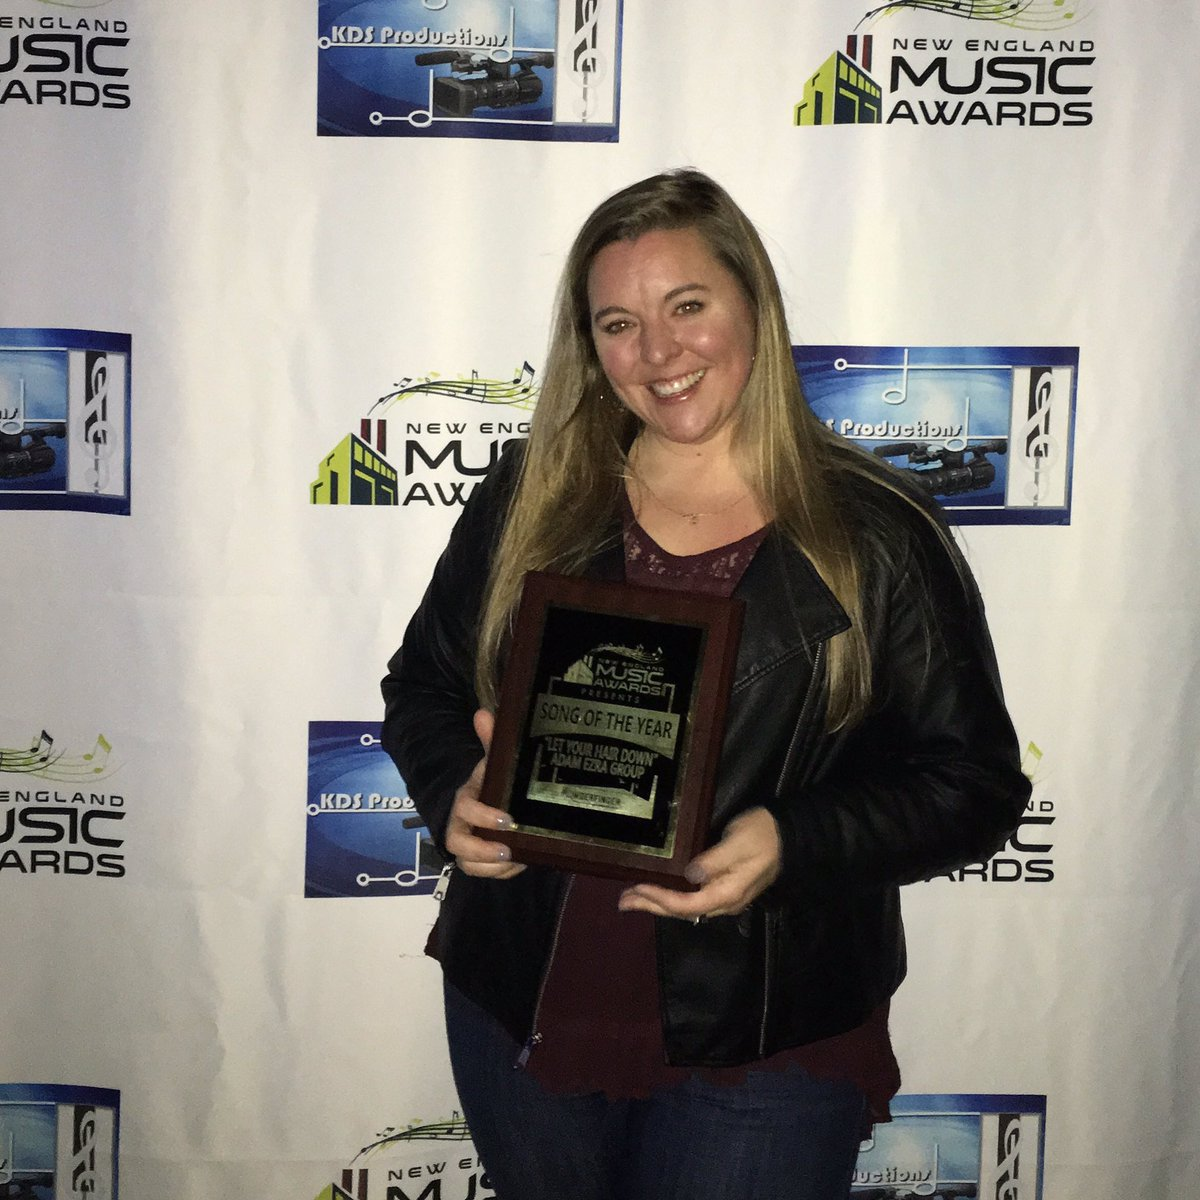 #newenglandmusicawards SONG OF THE YEAR: let your hair down!!  Charlene Bemis accepting the award on our behalf: https://t.co/wBJwAjjt0g